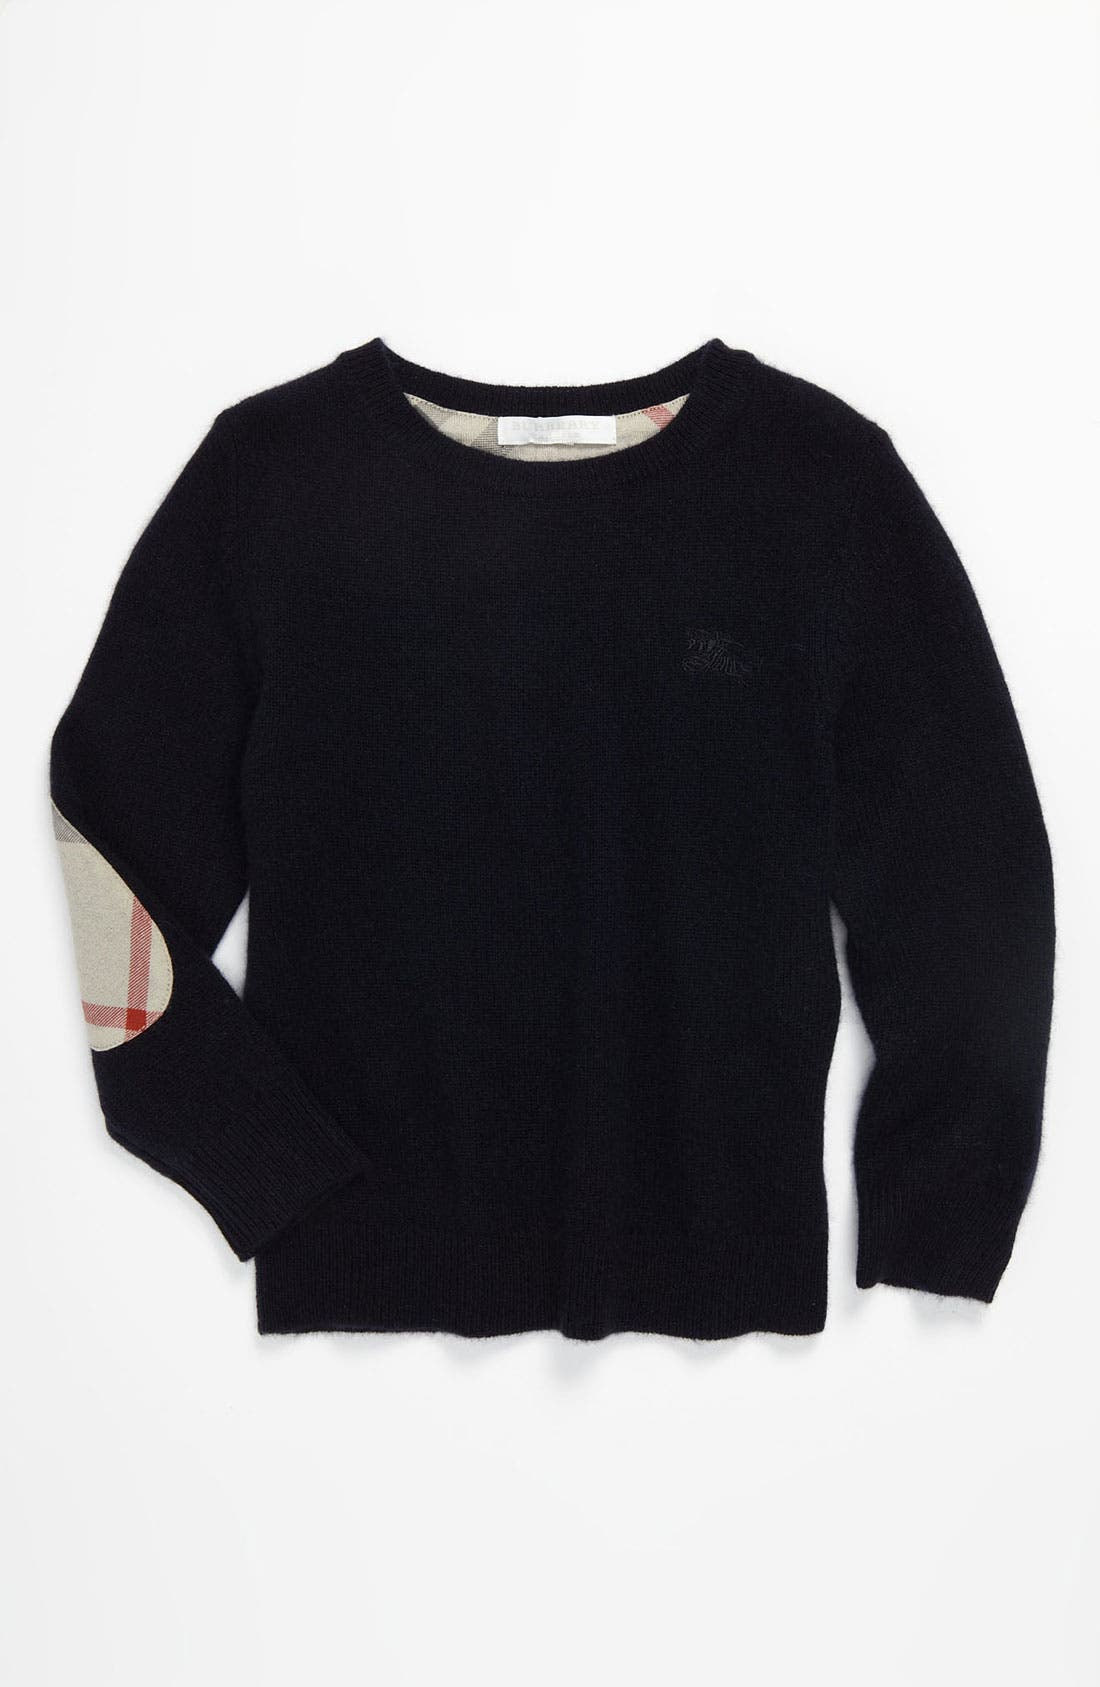 Alternate Image 1 Selected - Burberry Cashmere Sweater (Little Boys & Big Boys)